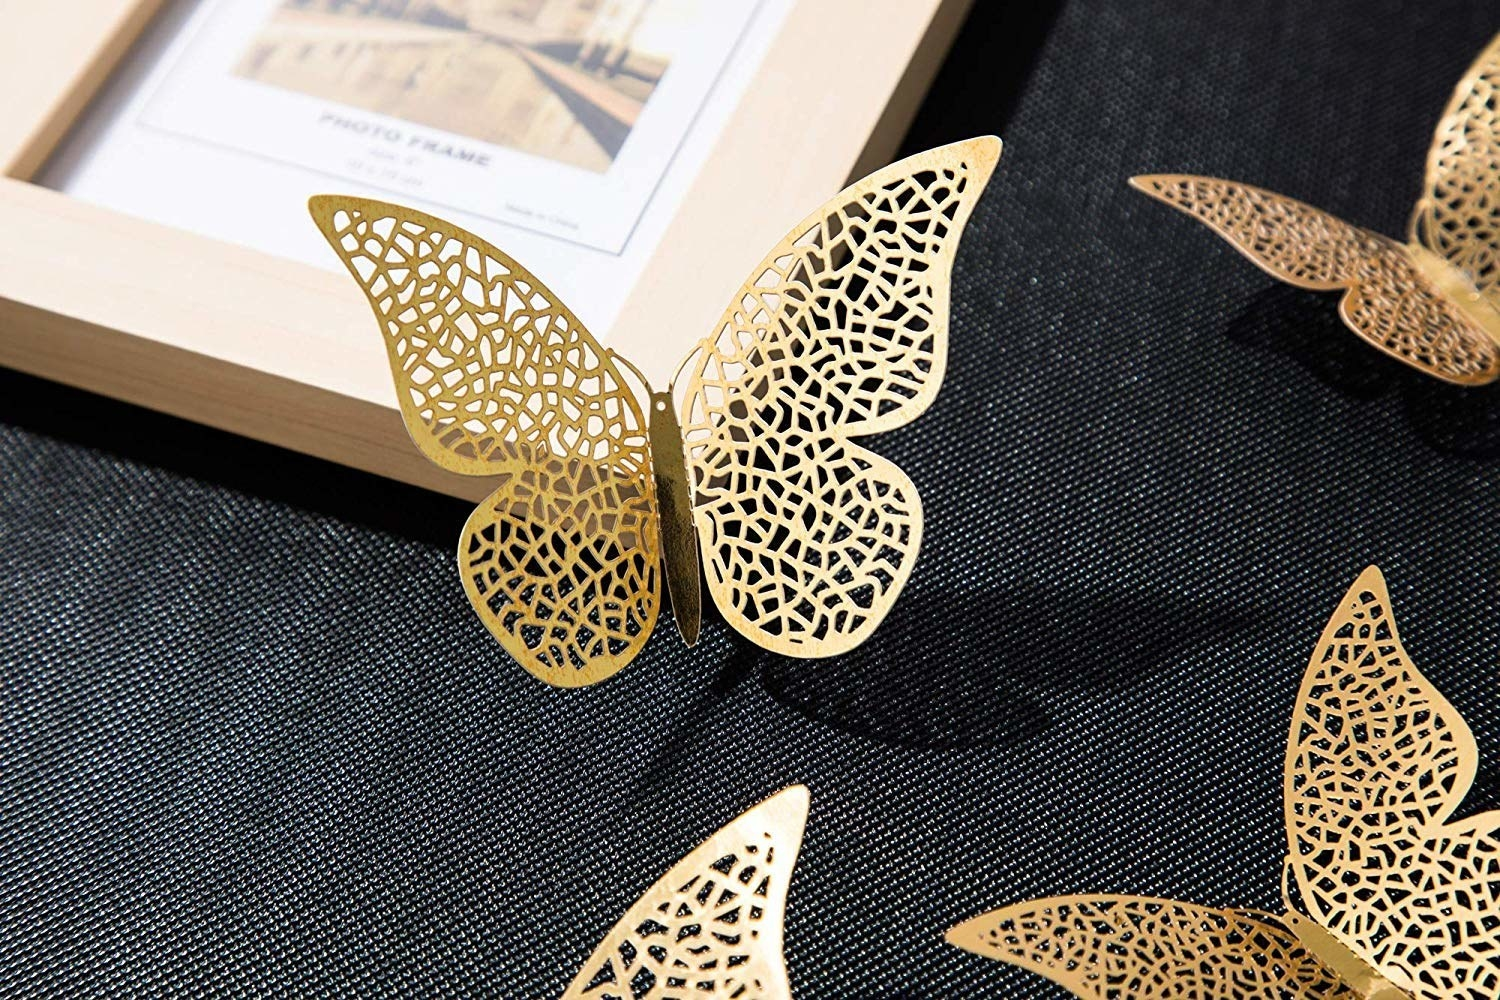 A 3D butterfly placed on a photo frame, with corners of other butterflies visible.